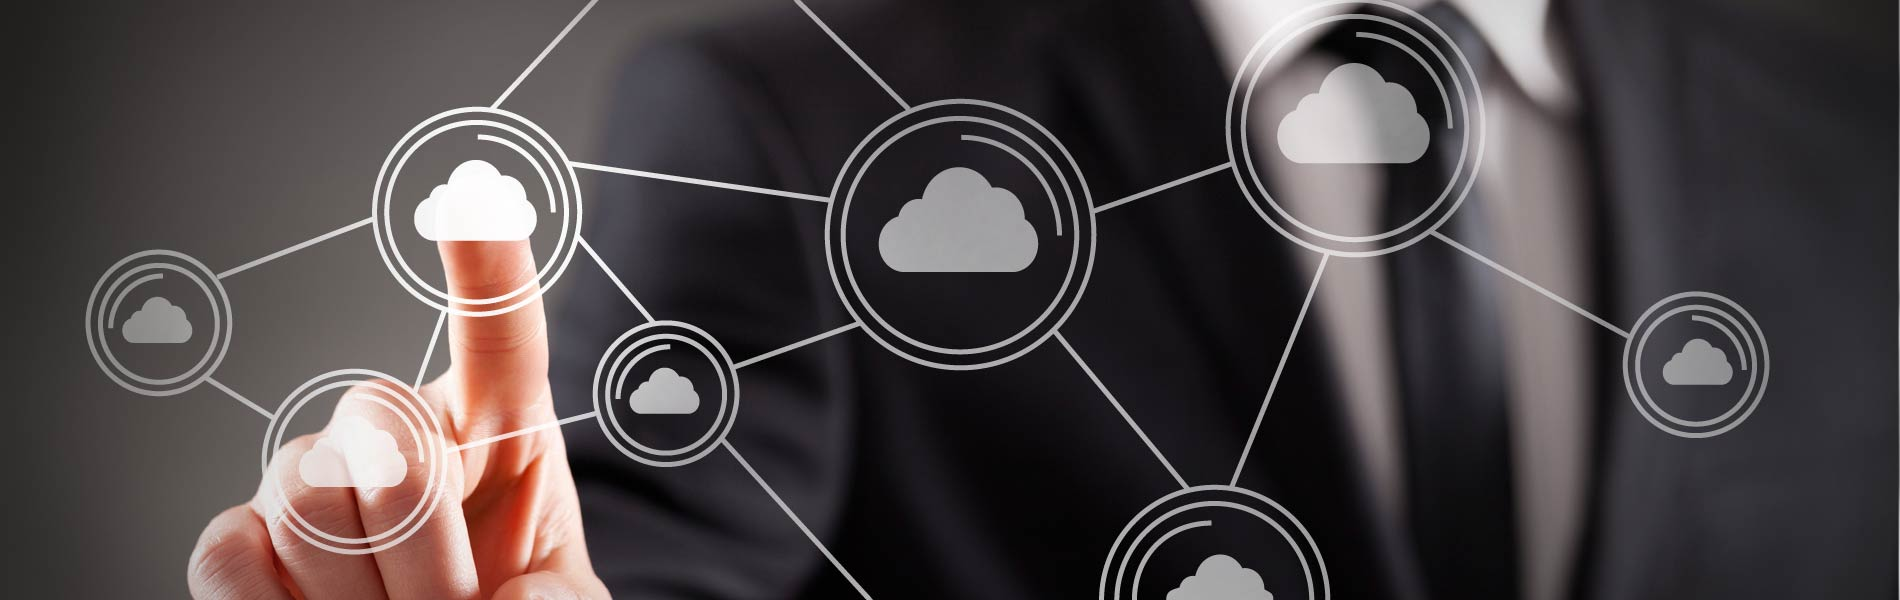 Specialist's At Moving You Into The Cloud